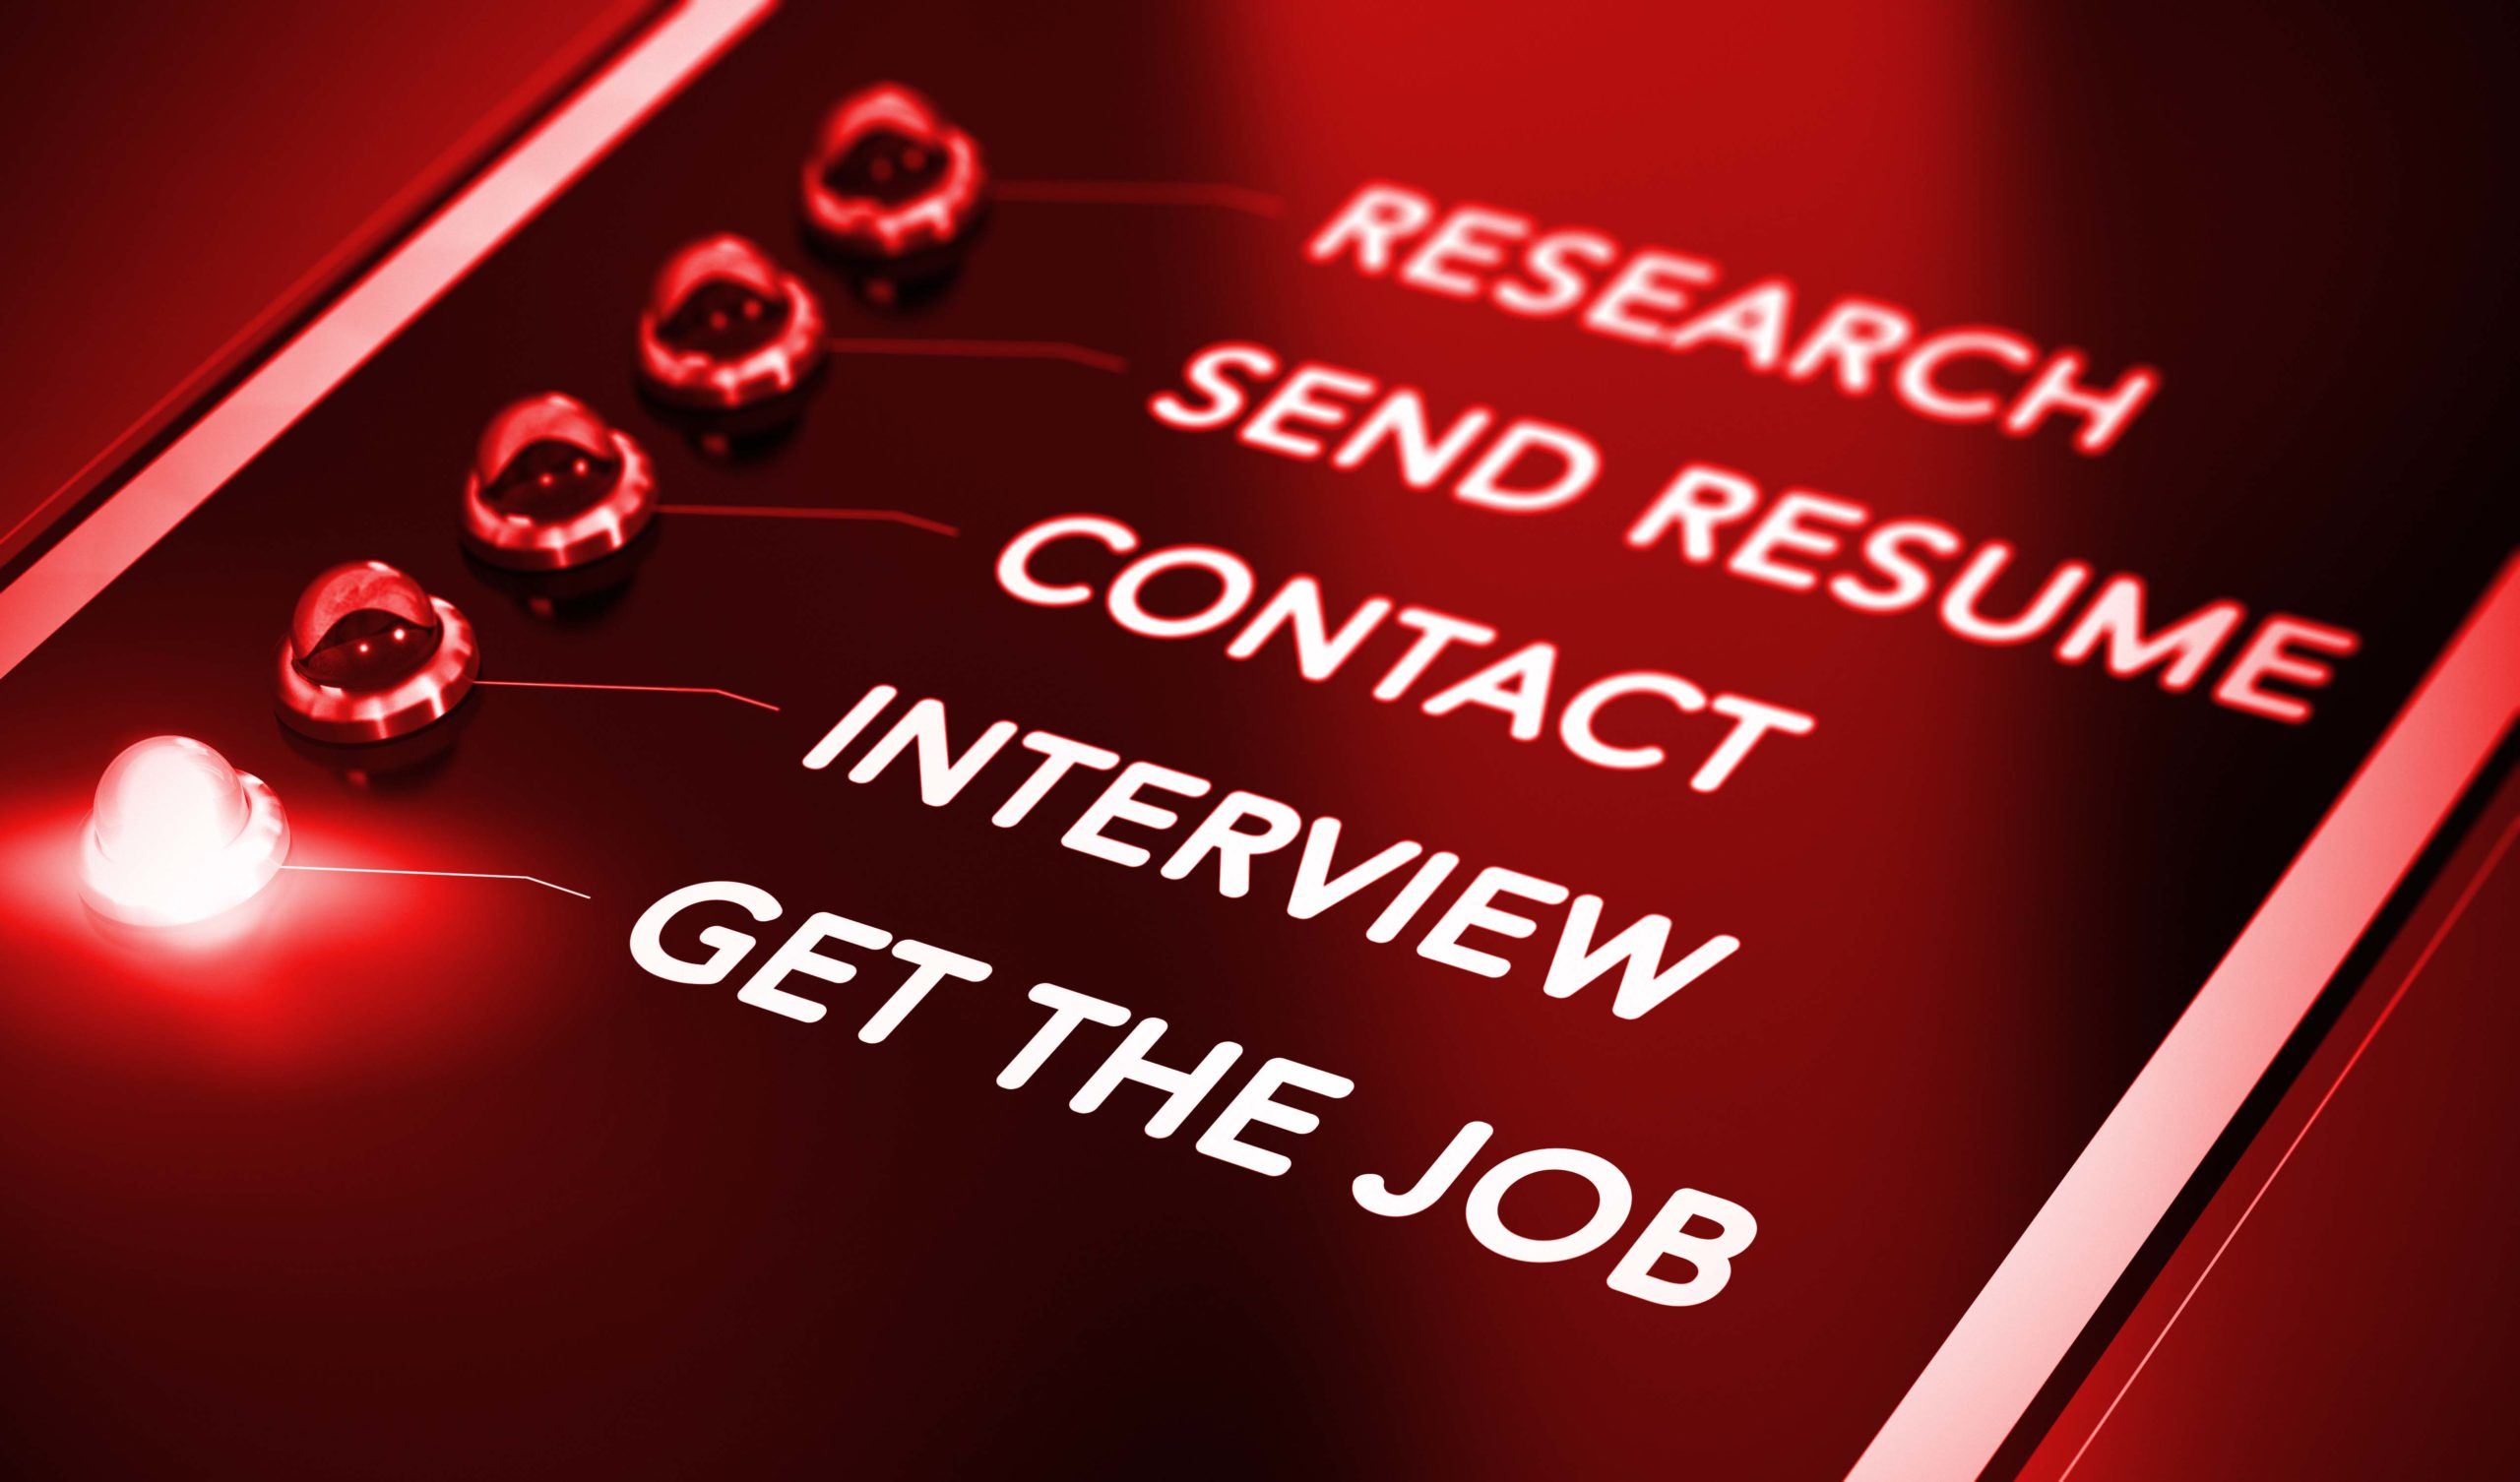 Blog steps in the interview process how many is too many?